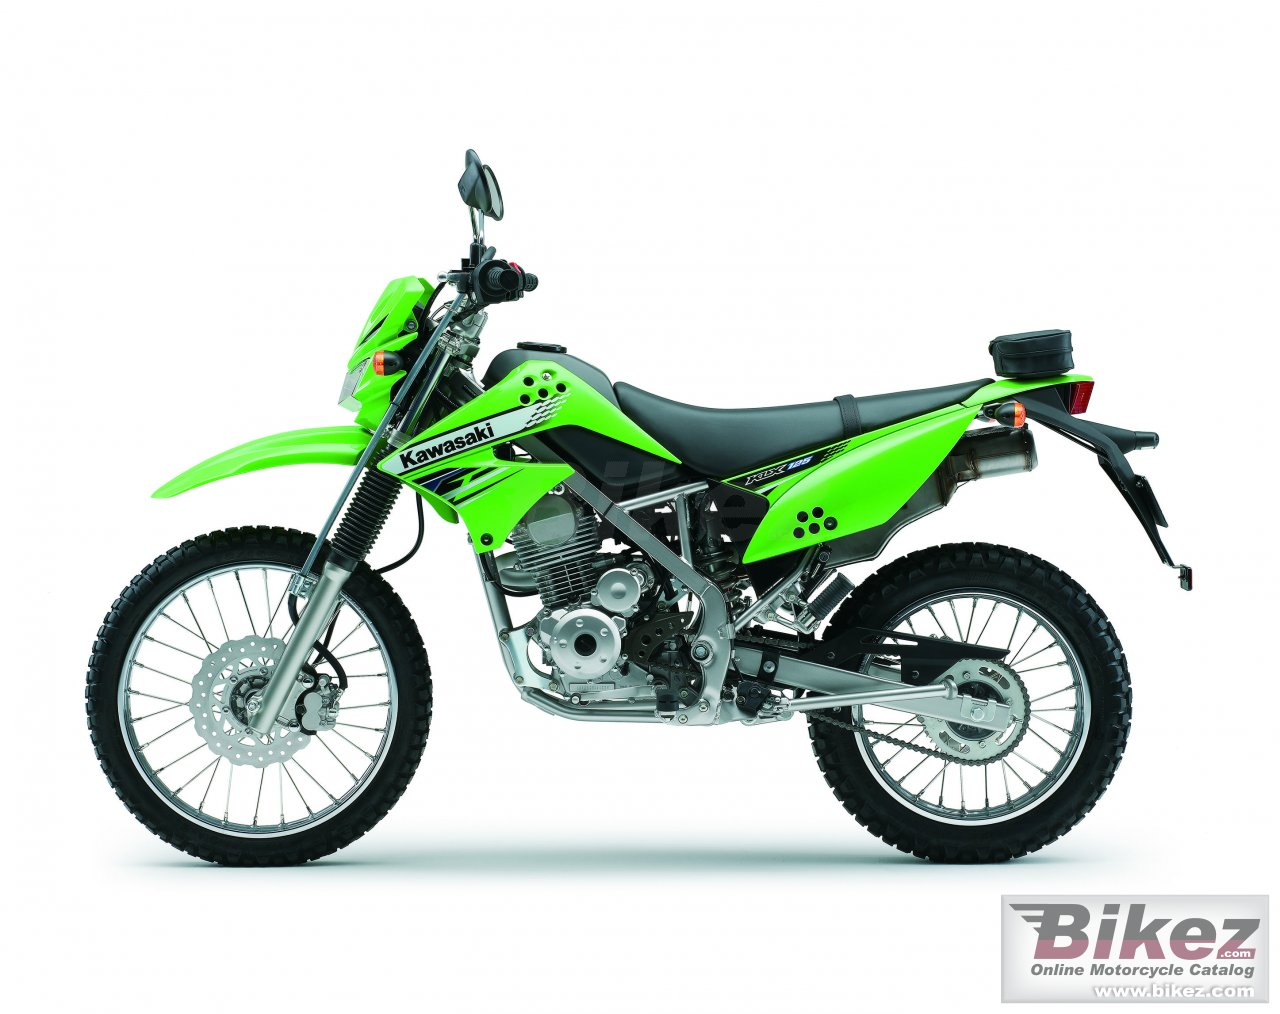 Big Kawasaki klx 125 picture and wallpaper from Bikez.com